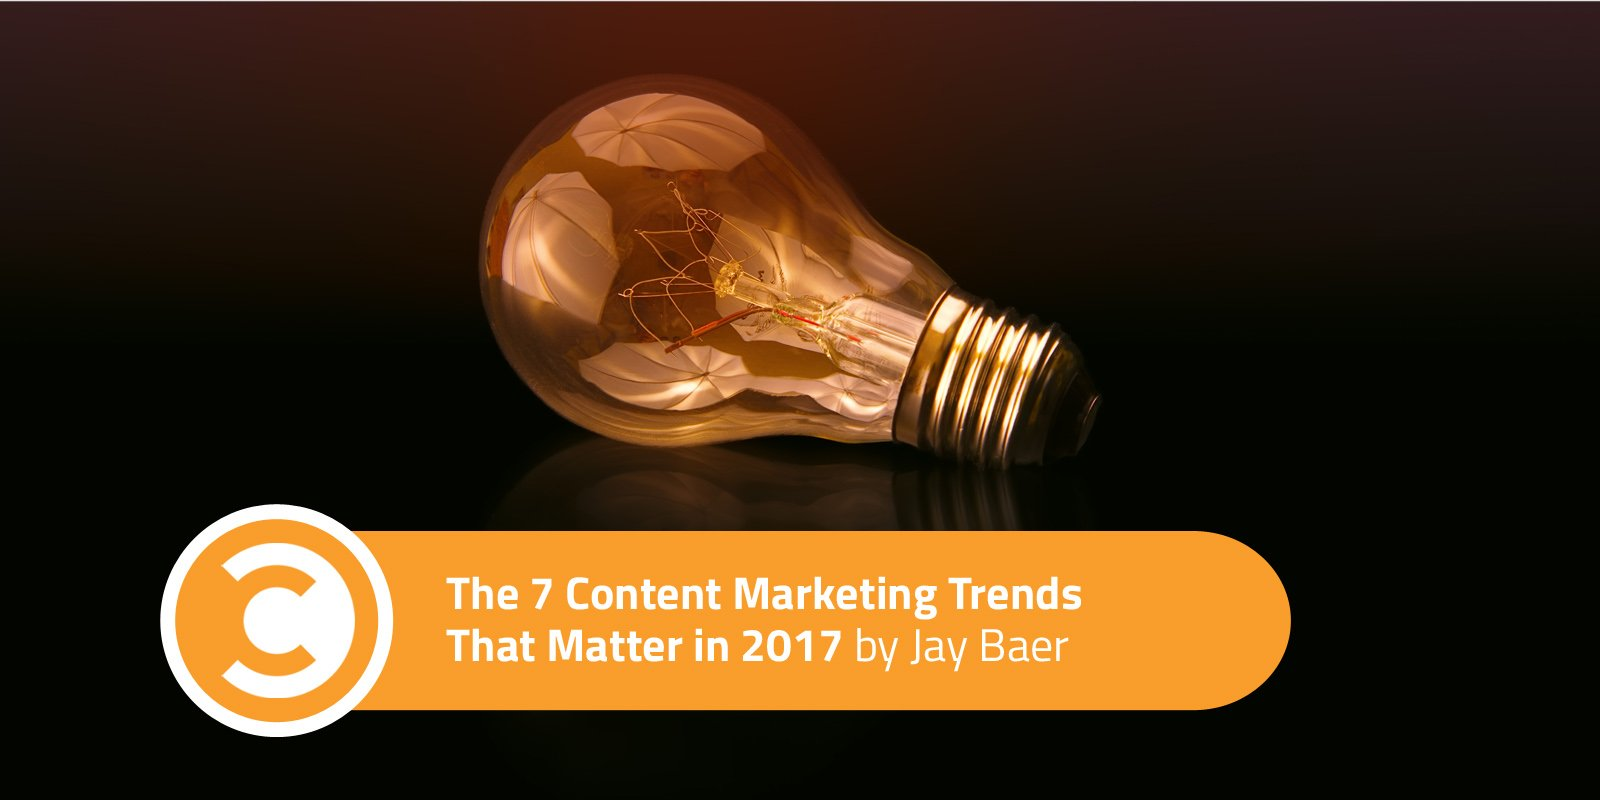 The 7 Content Marketing Trends That Matter in 2017